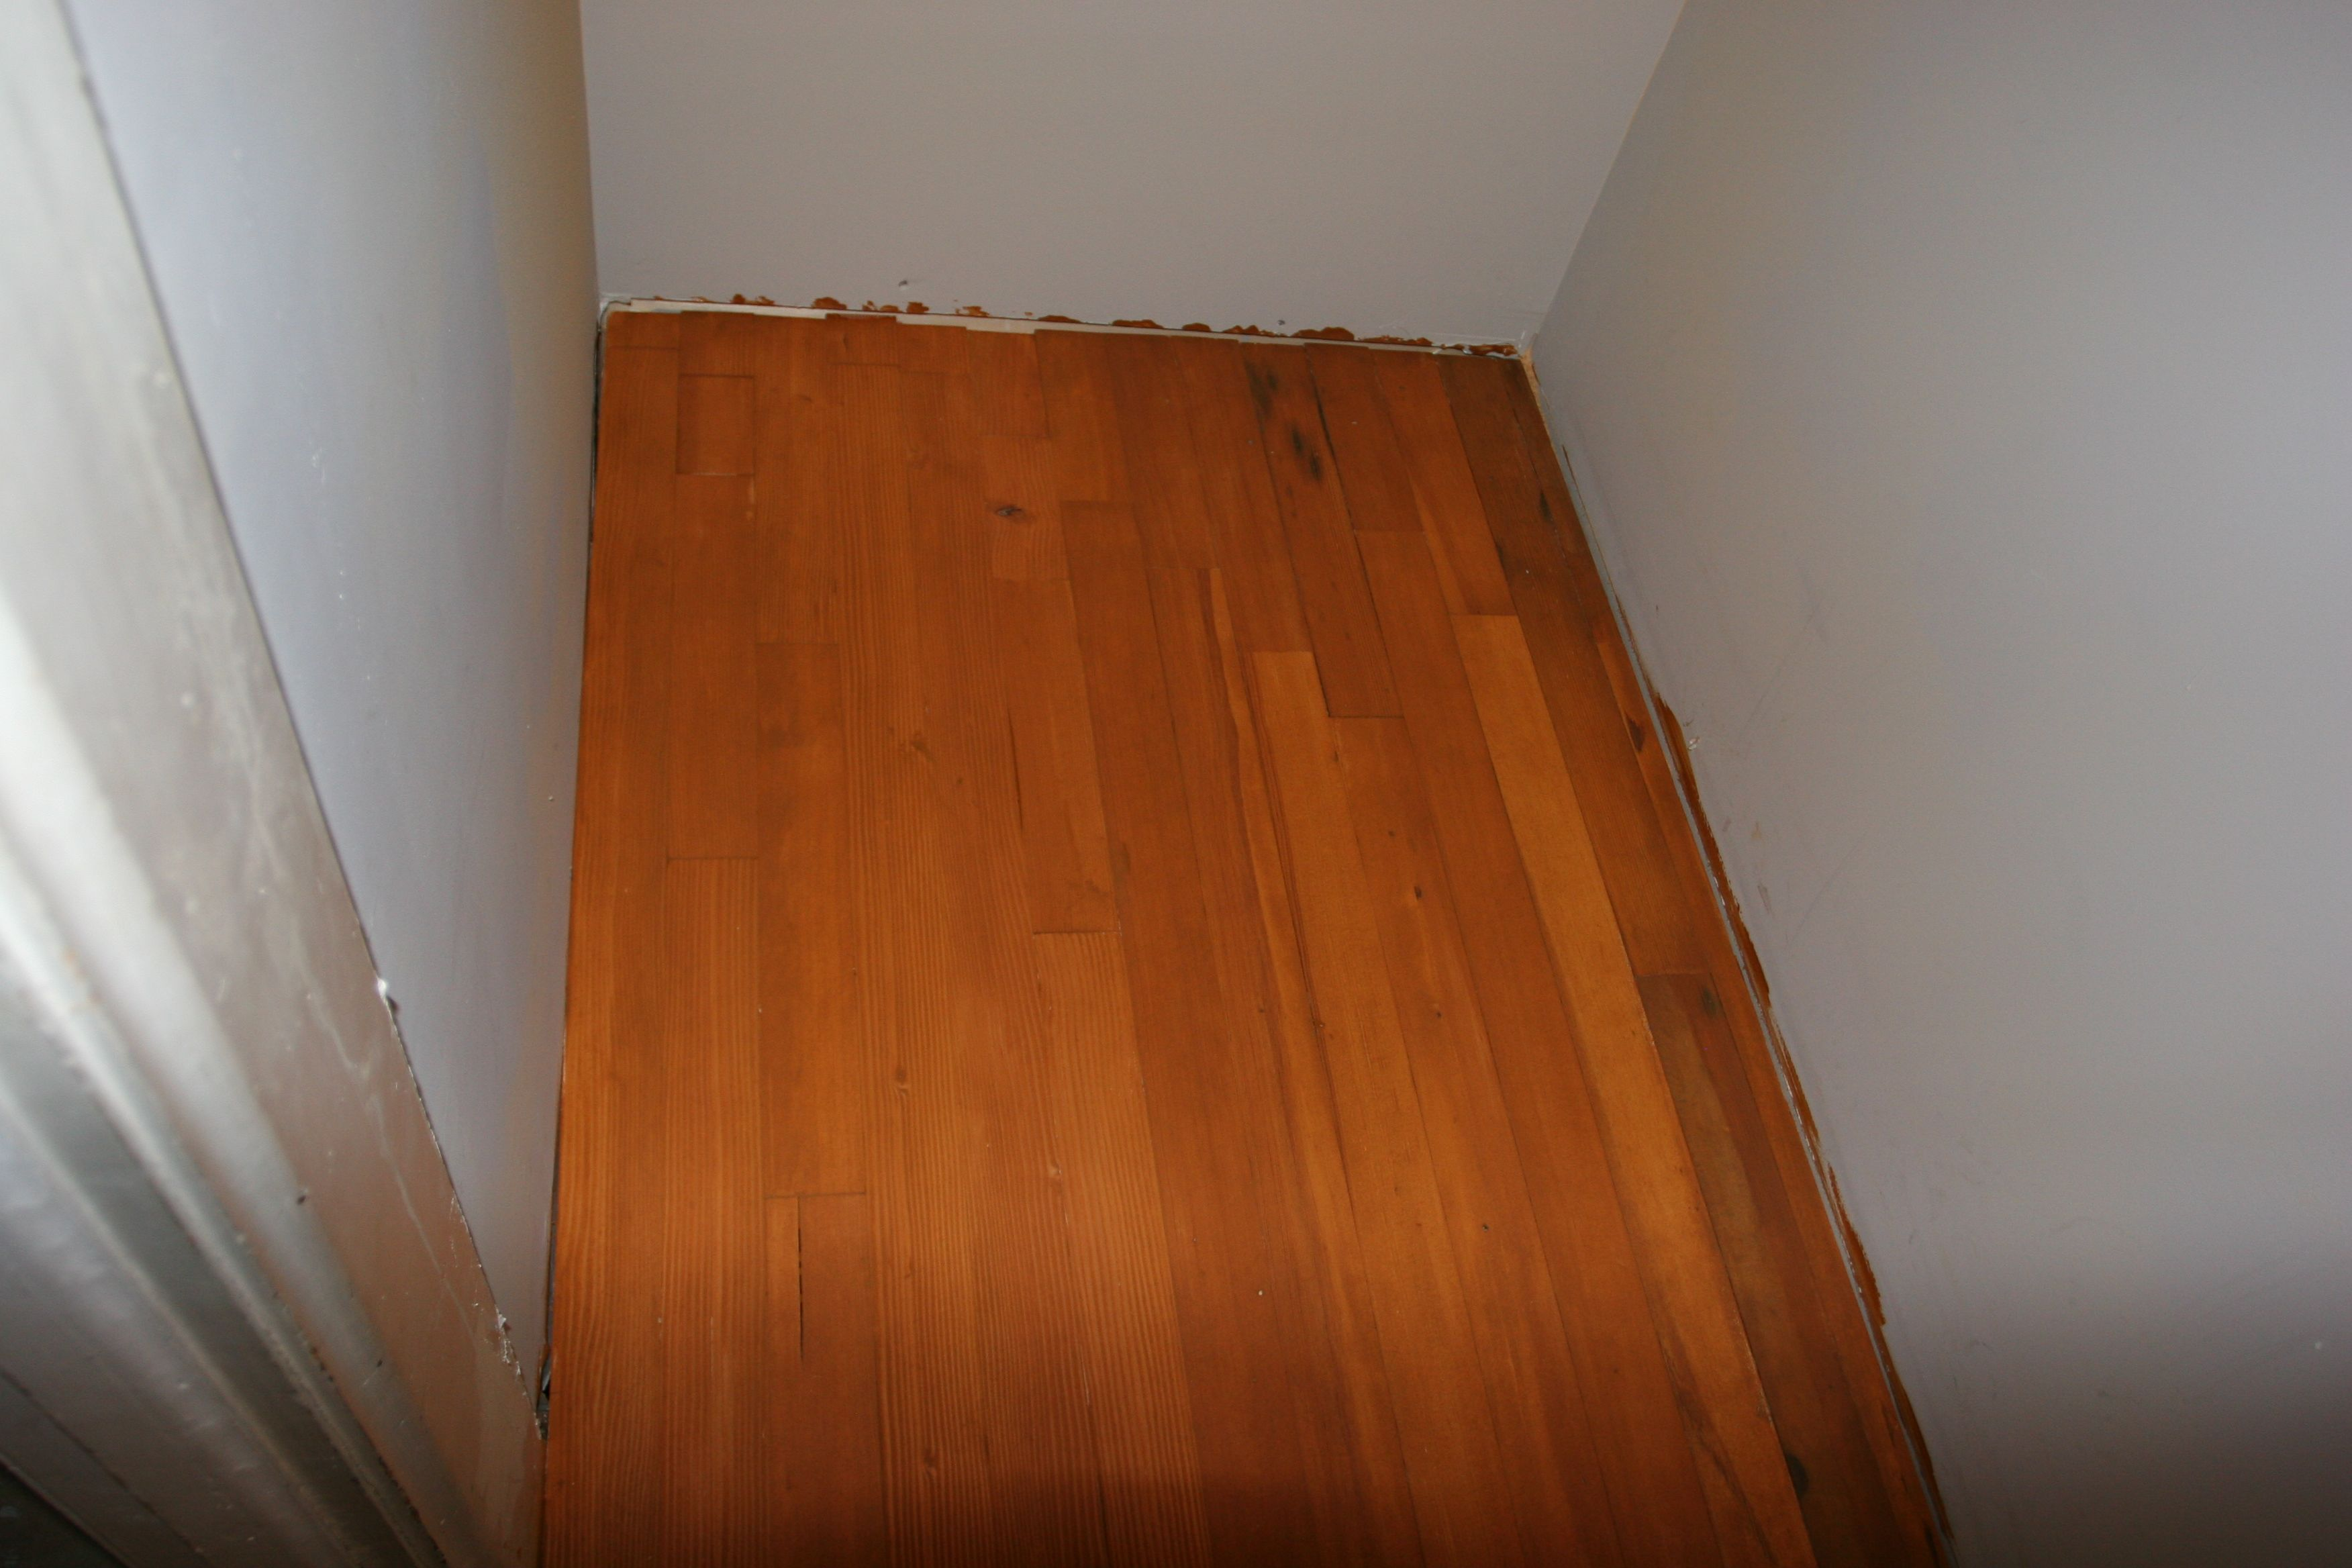 Closet floor - the upstairs is aged, antique quarter sawn fir, just like the original kitchen. These are leftover boards from the downstairs project.